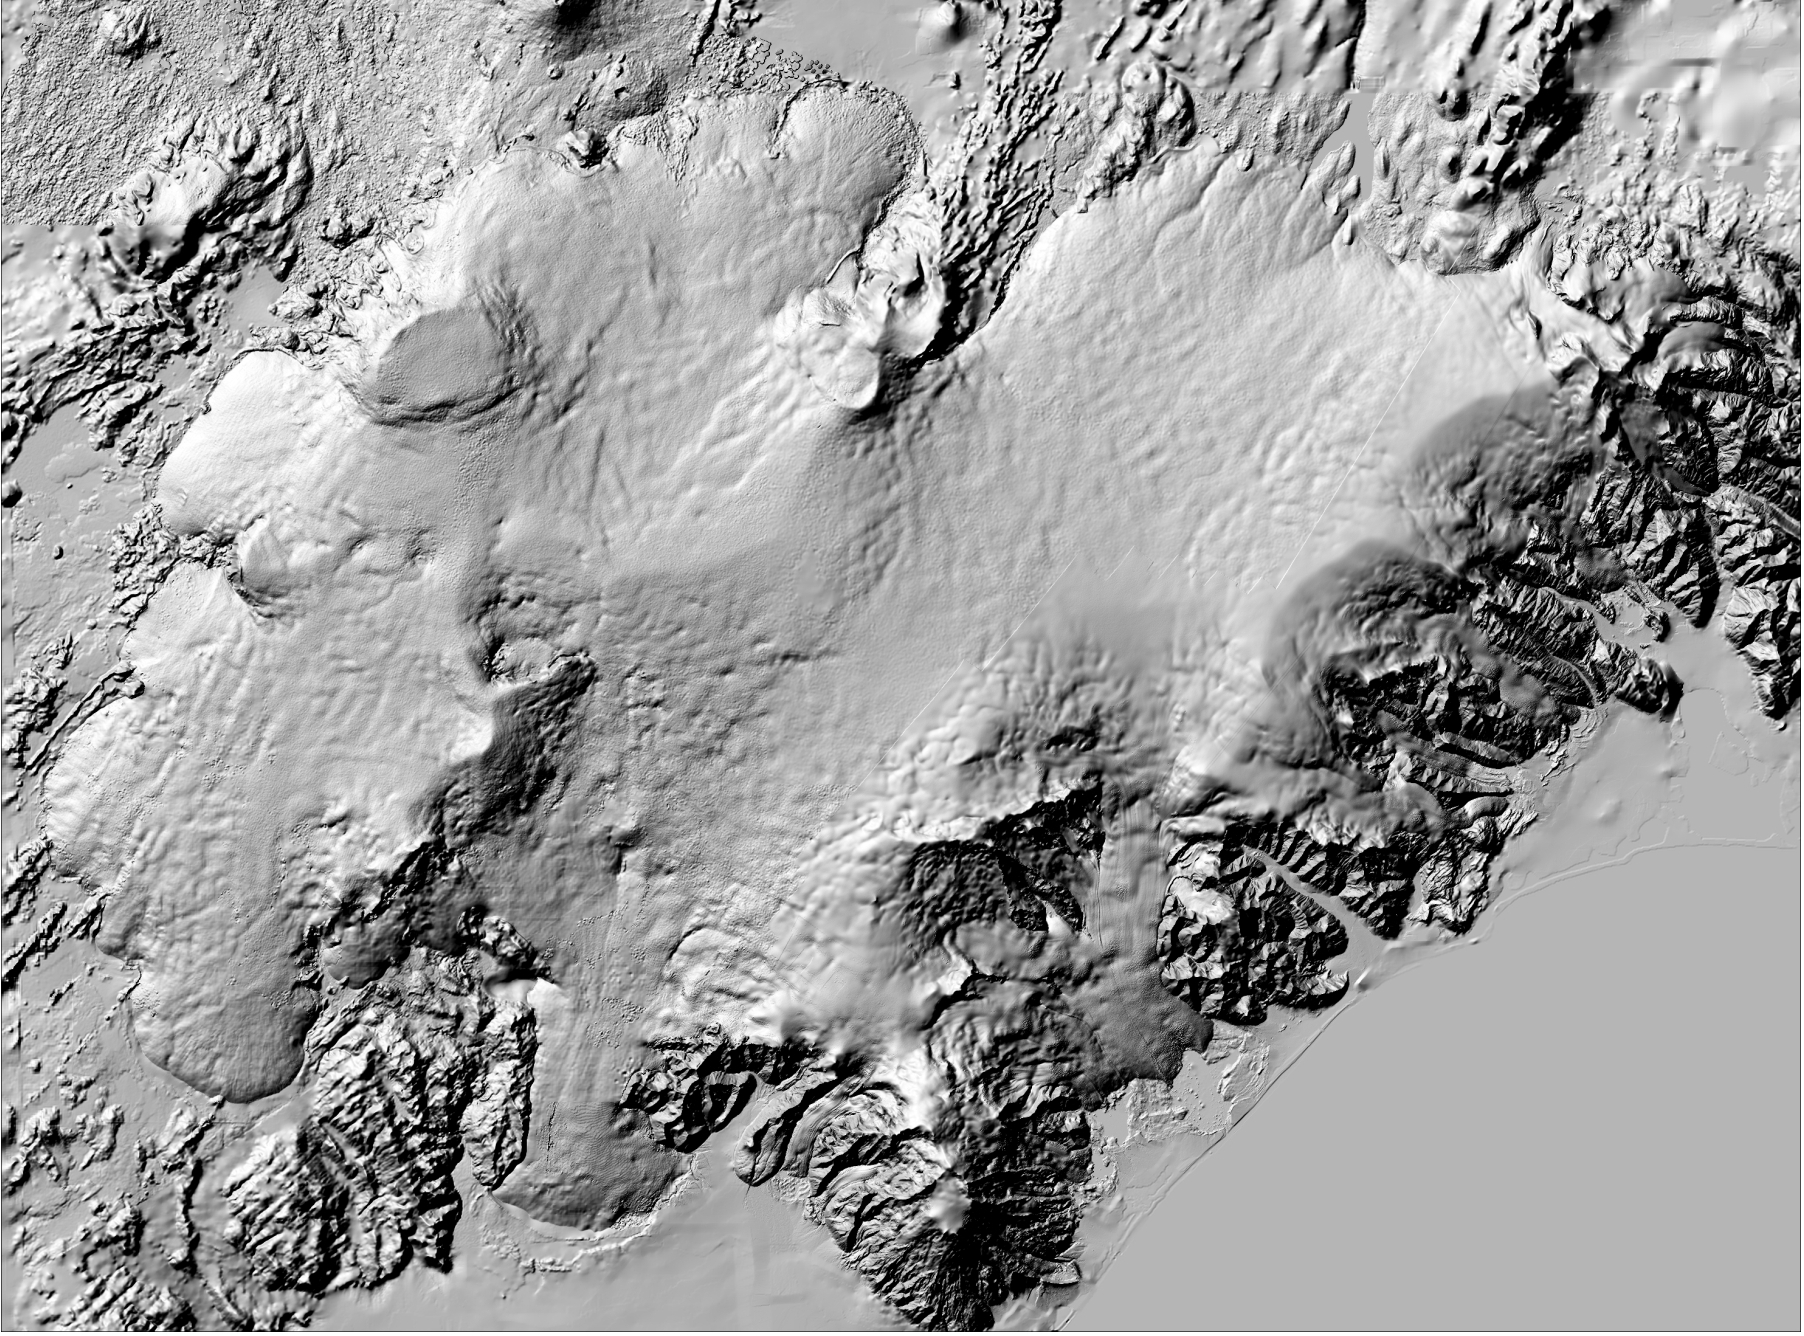 Lidar digital elevation model of Vatnajökull ice cap 2010–2012. Source: Data set of the Icelandic Meteorological Office and Institute of Earth Sciences, University of Iceland.